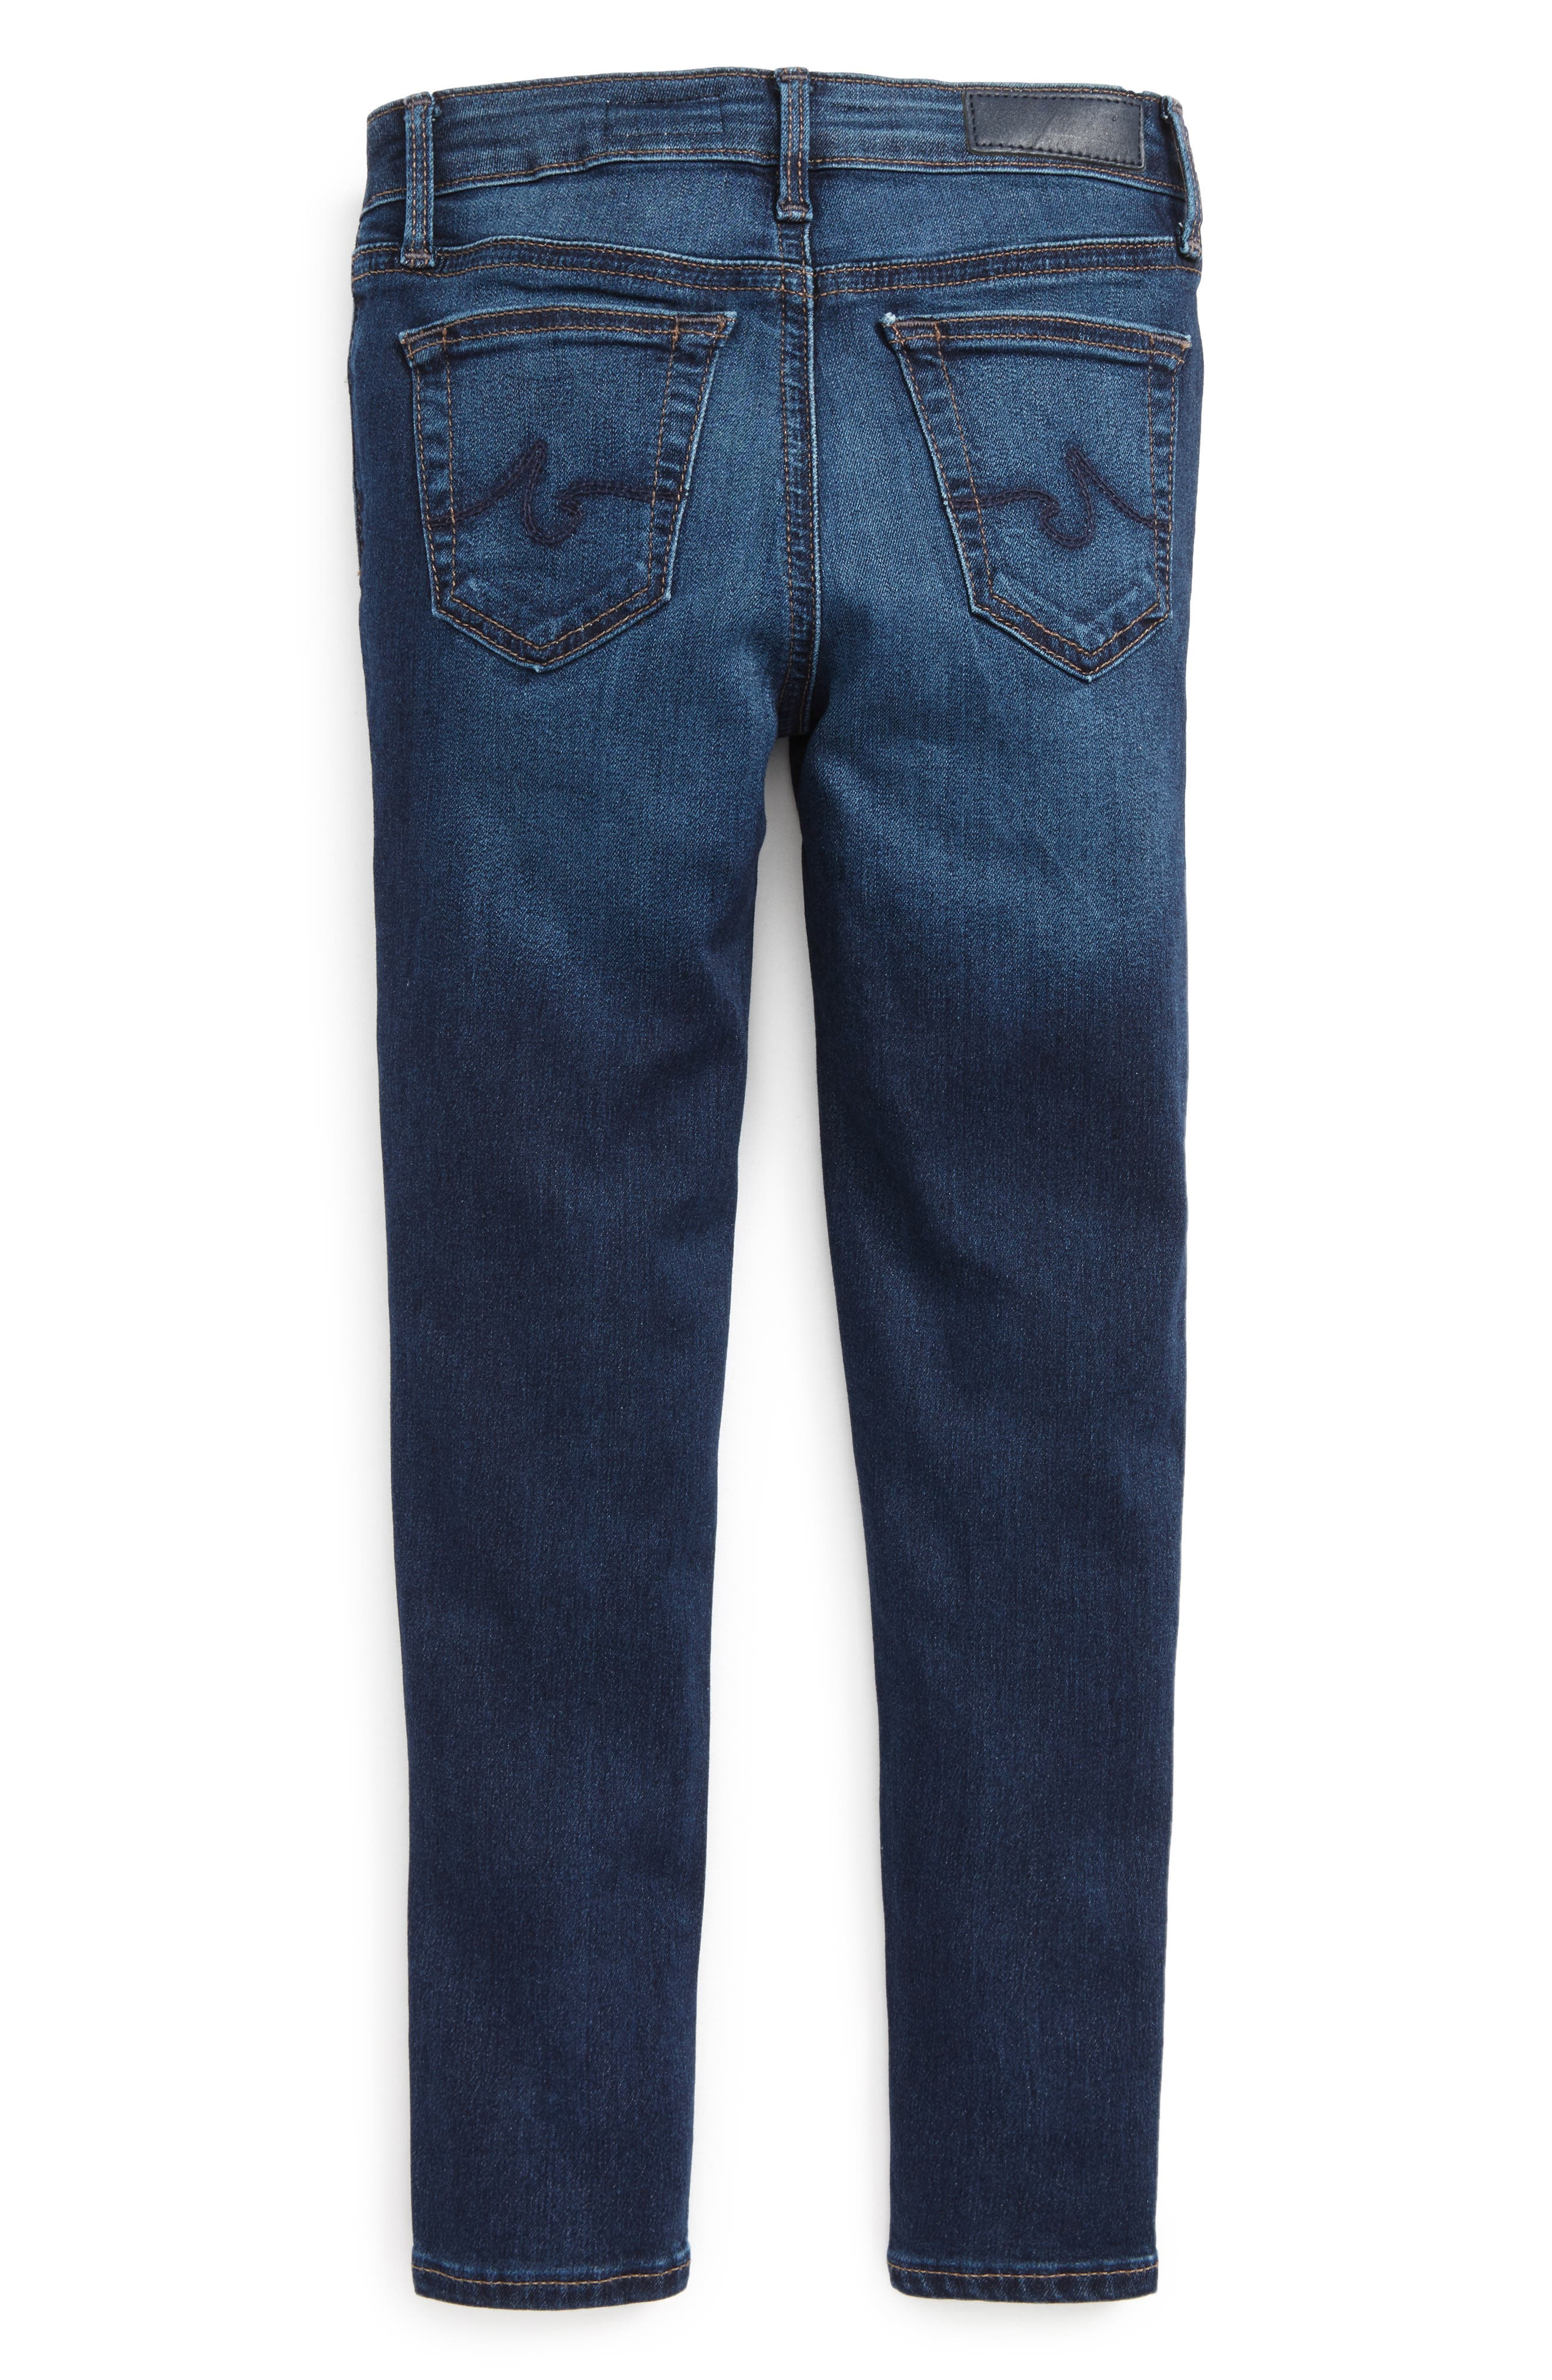 Twiggy Skinny Ankle Jeans,                             Alternate thumbnail 2, color,                             423